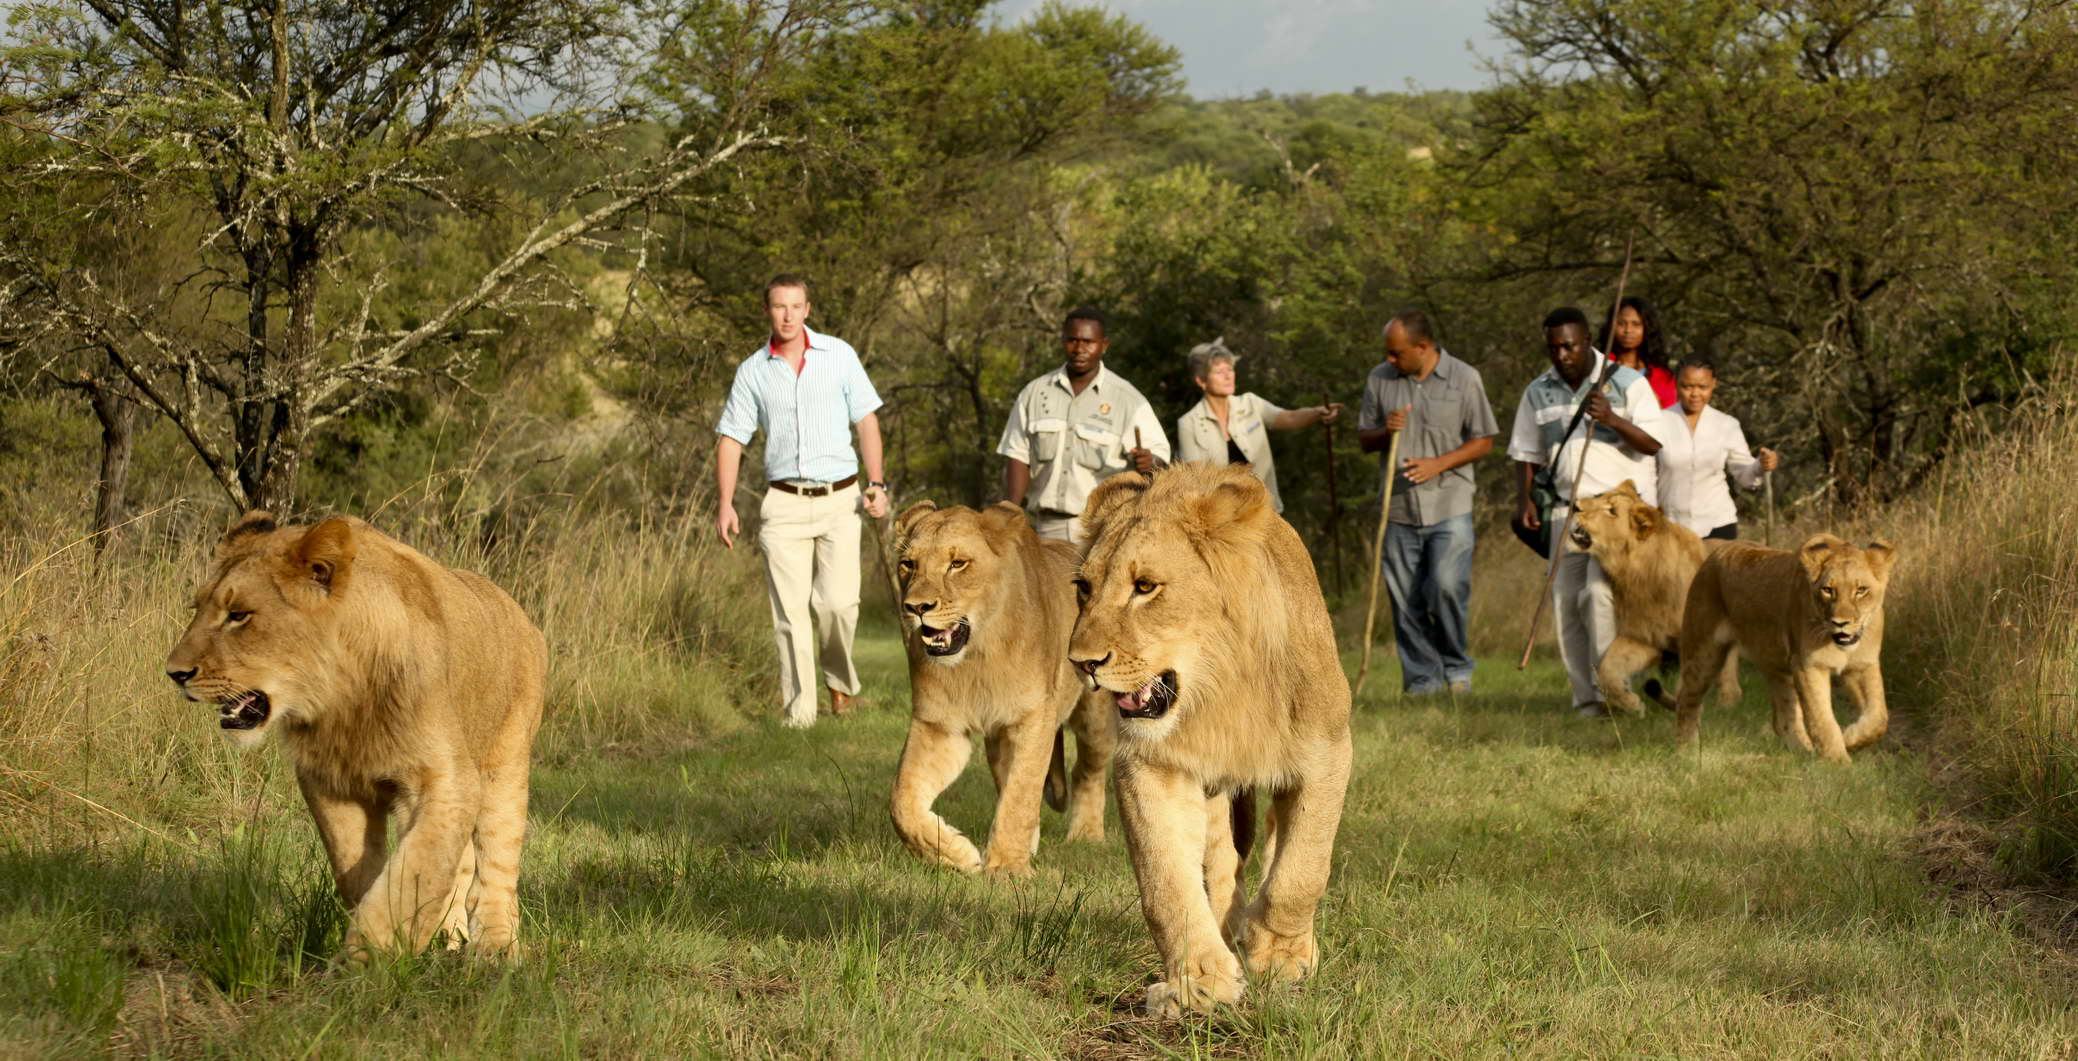 Experience a Walk with Lions at Casela